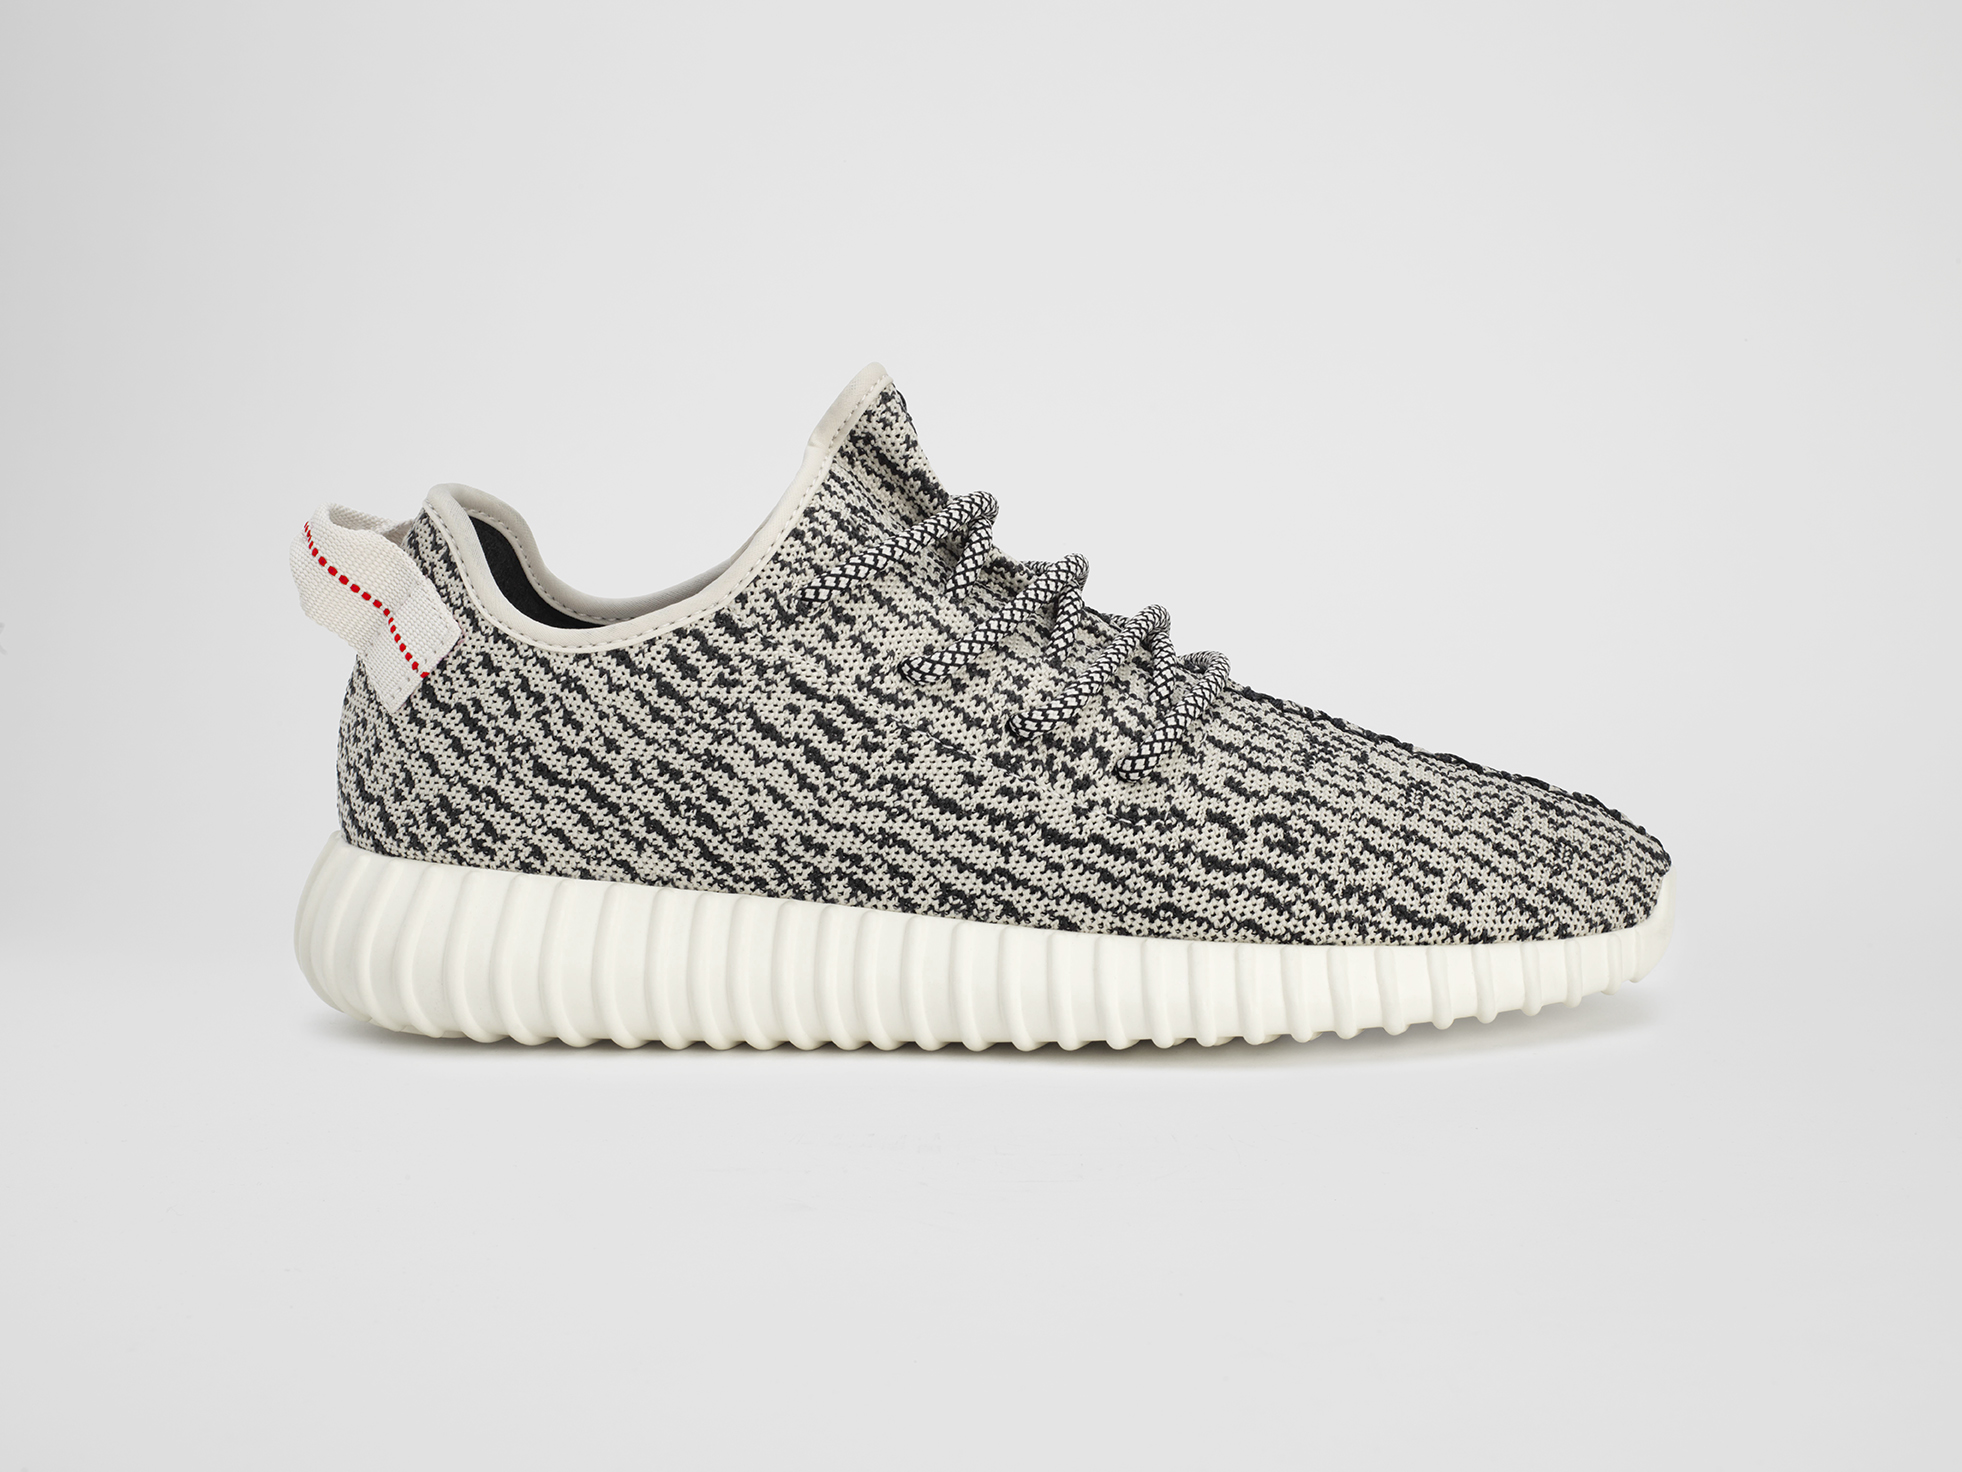 bf711544baecb Kanye West and adidas Originals  Introducing the YEEZY BOOST 350 - size   blog